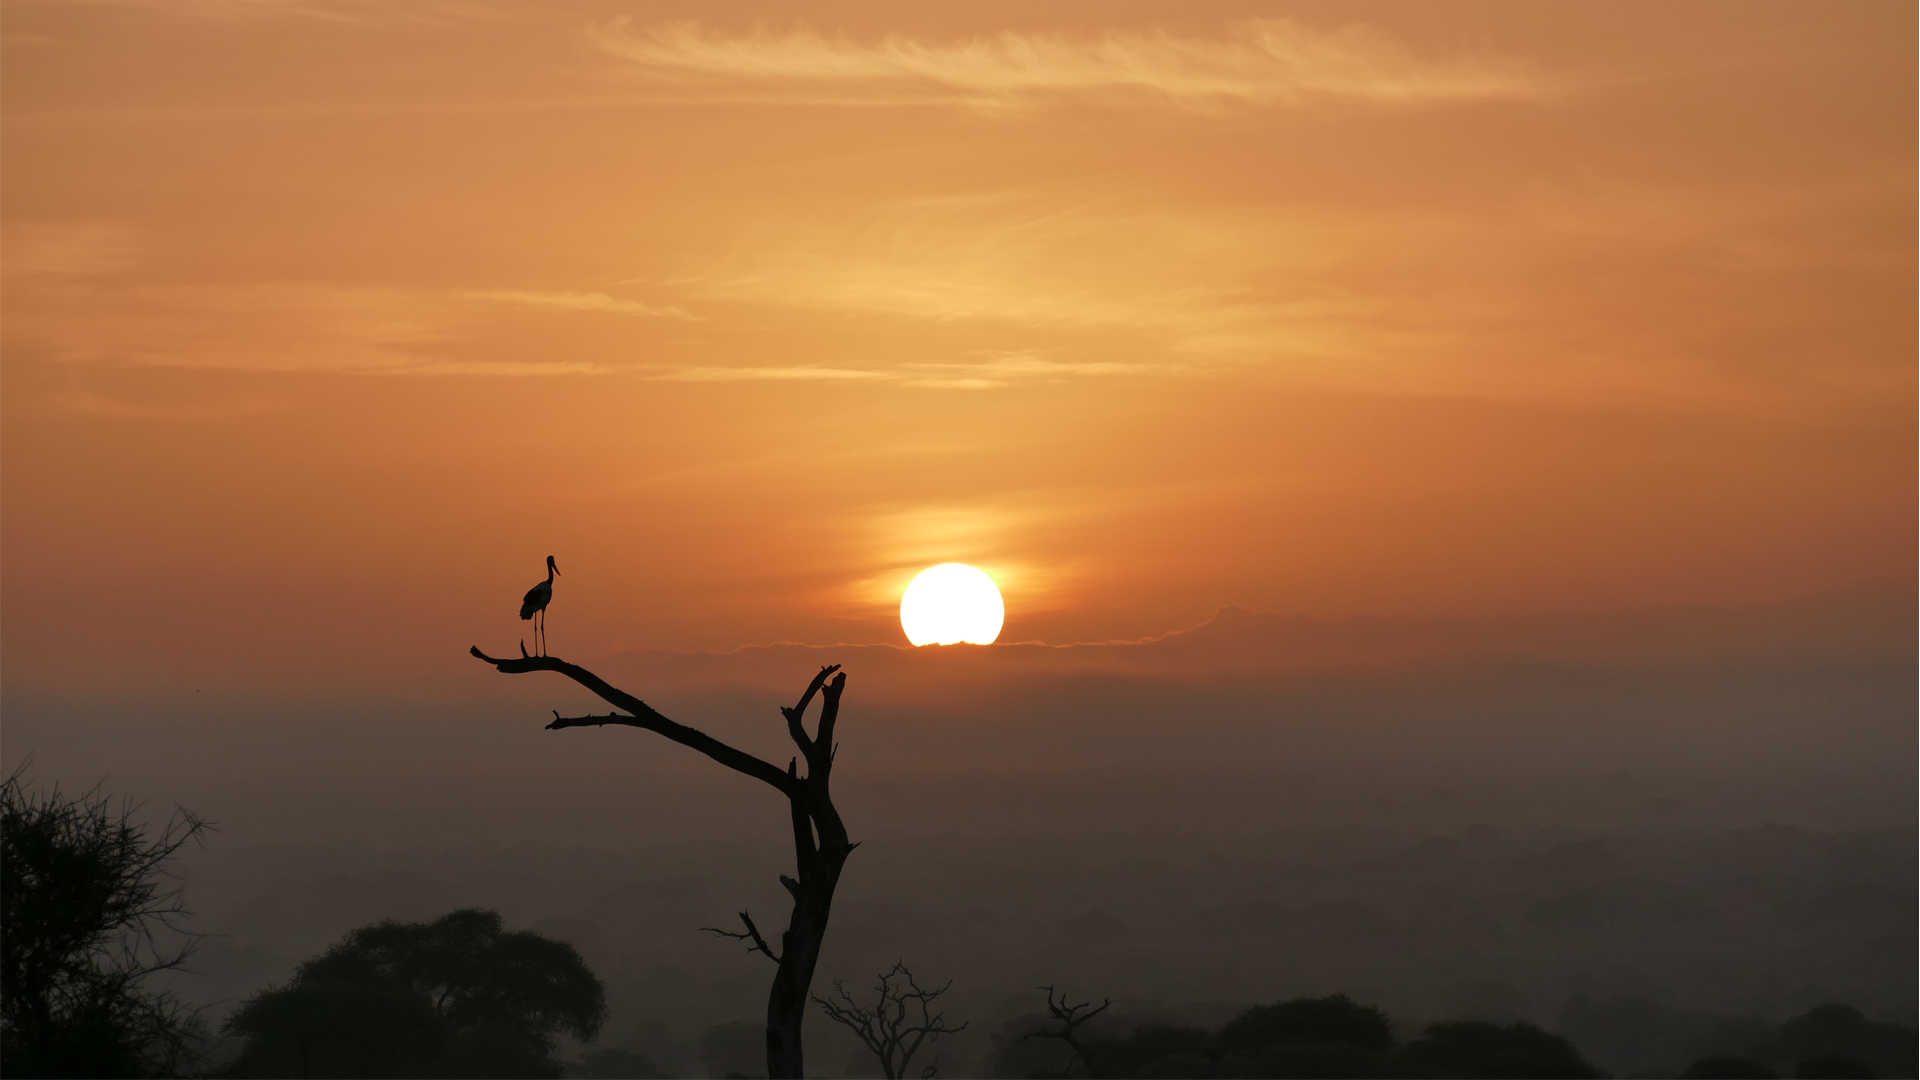 All About Safaris Great Value header rob heron silhouette sunset